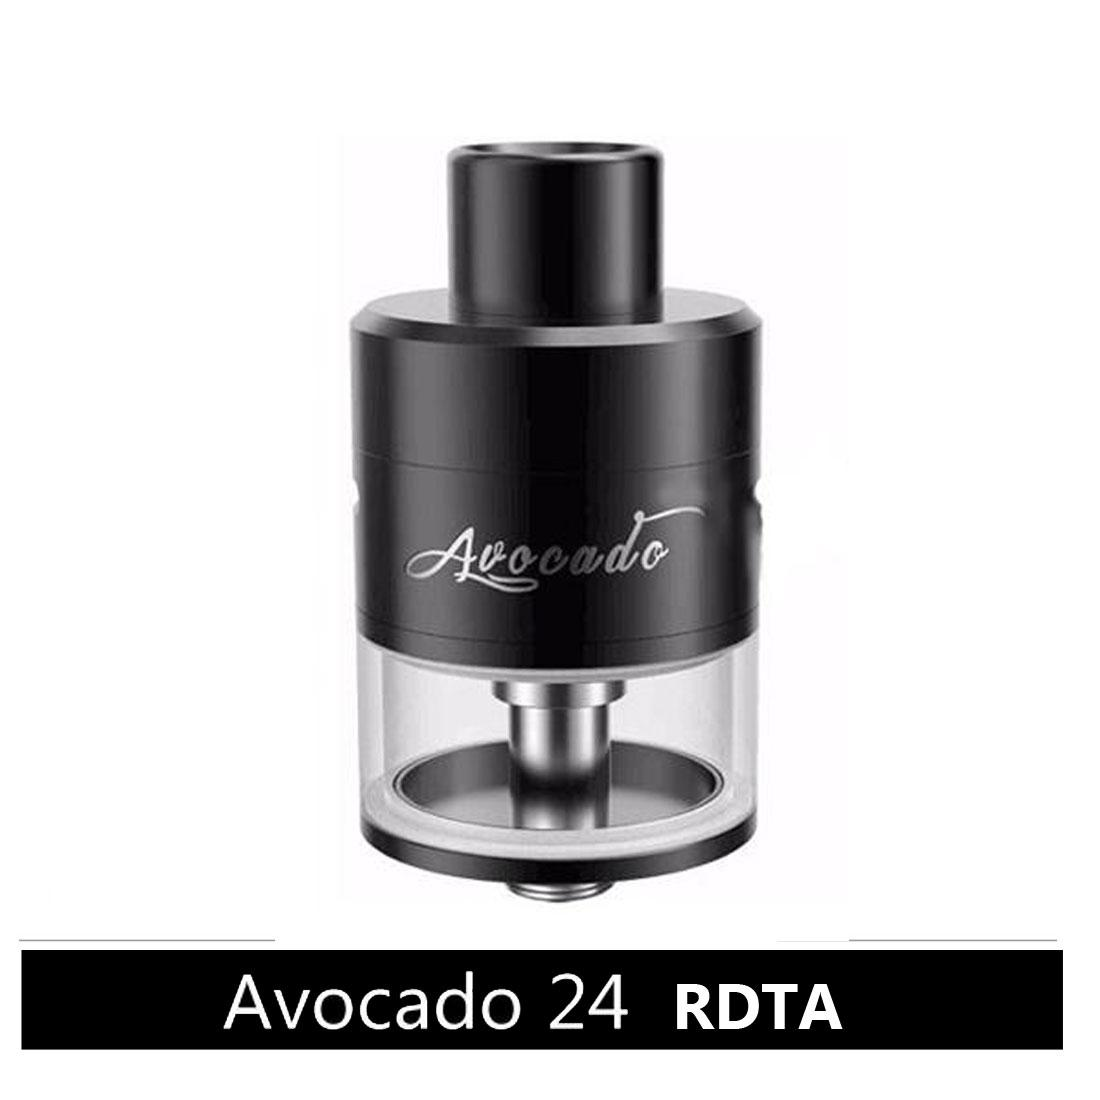 Atomizer For Sale Vape Prices Brands Specs In Tank Rda Tsunami 22 Mm Philippines